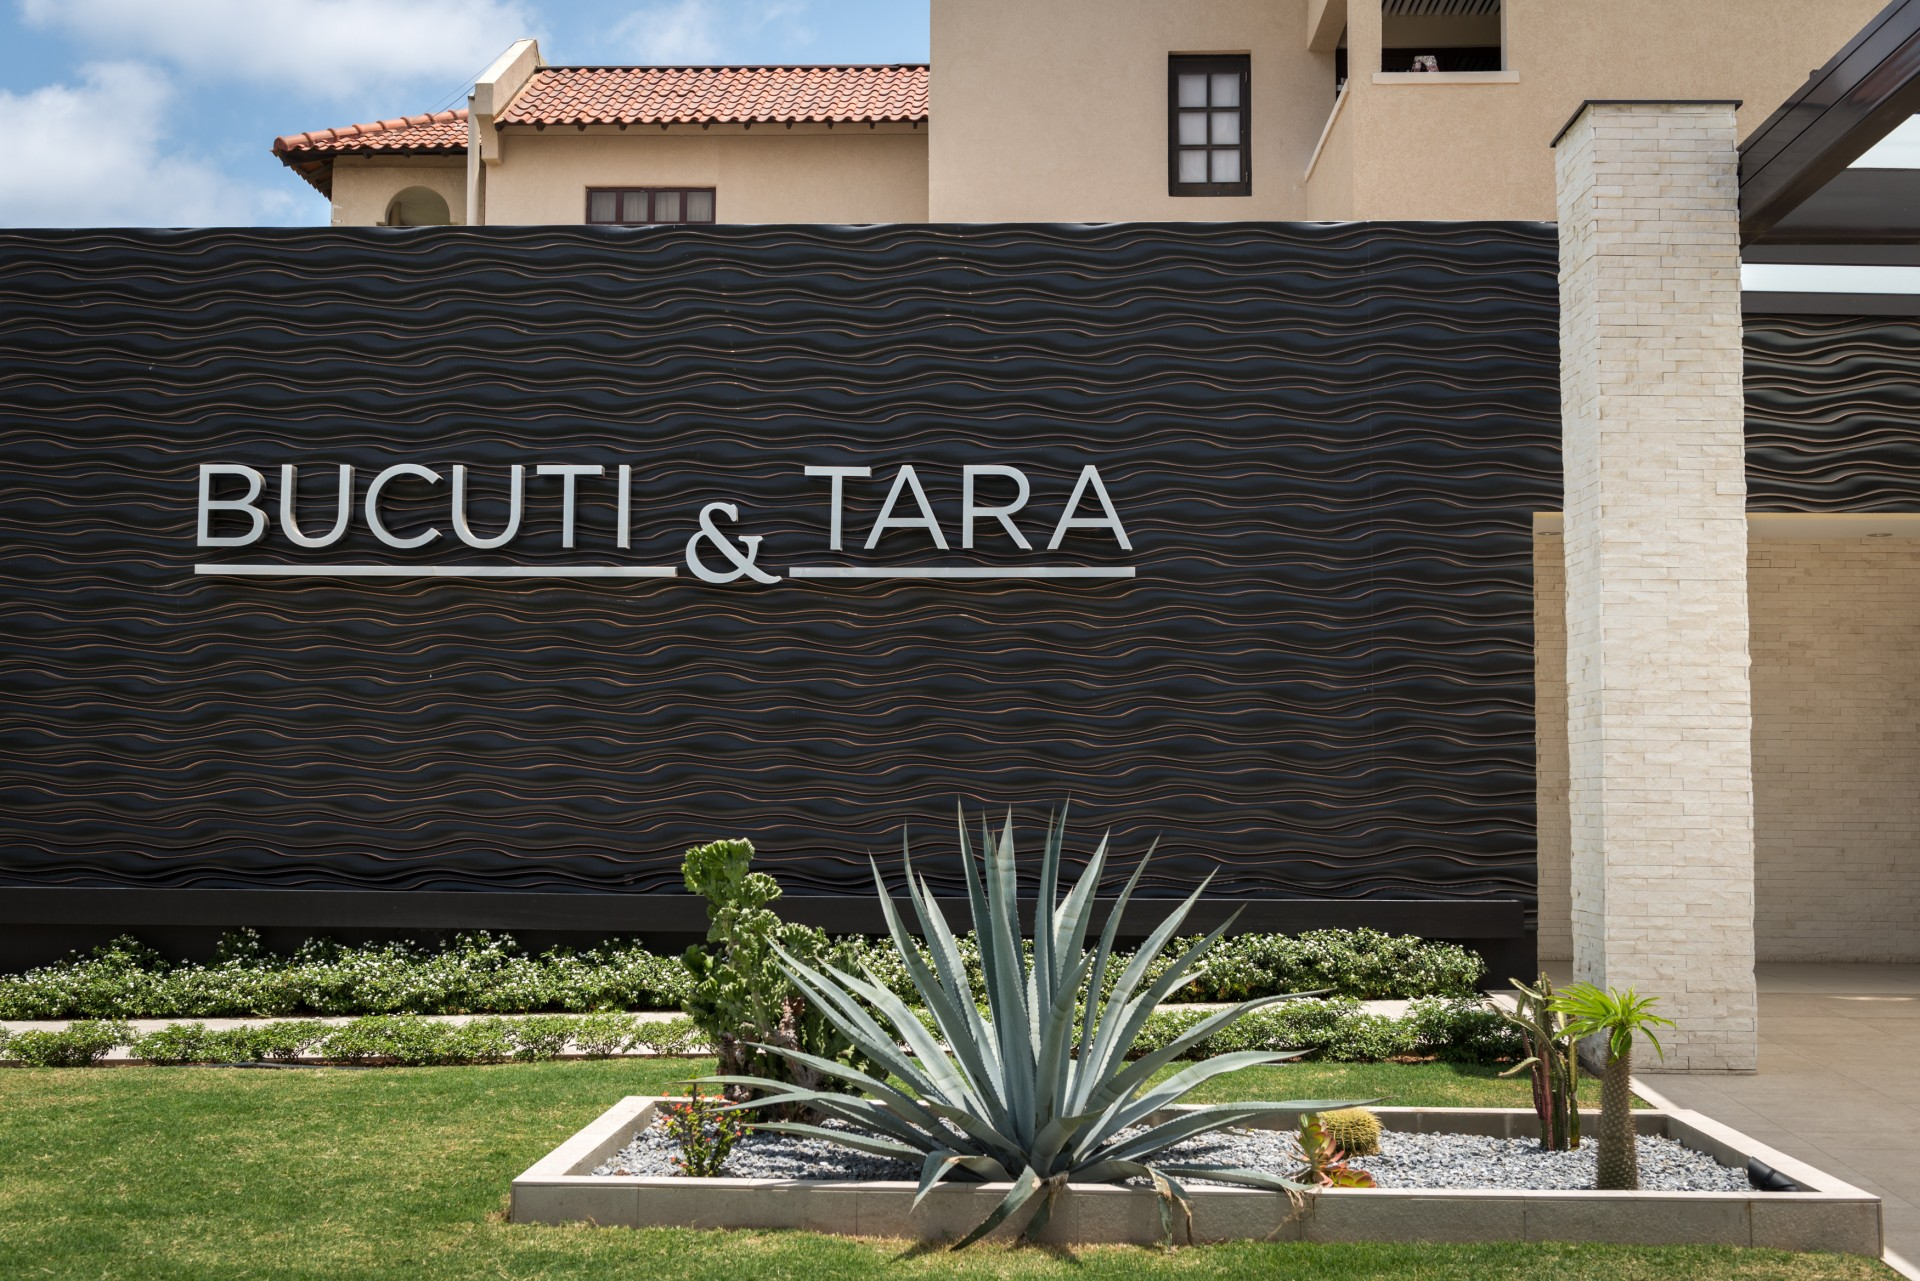 Bucuti & Tara remains staffed and open